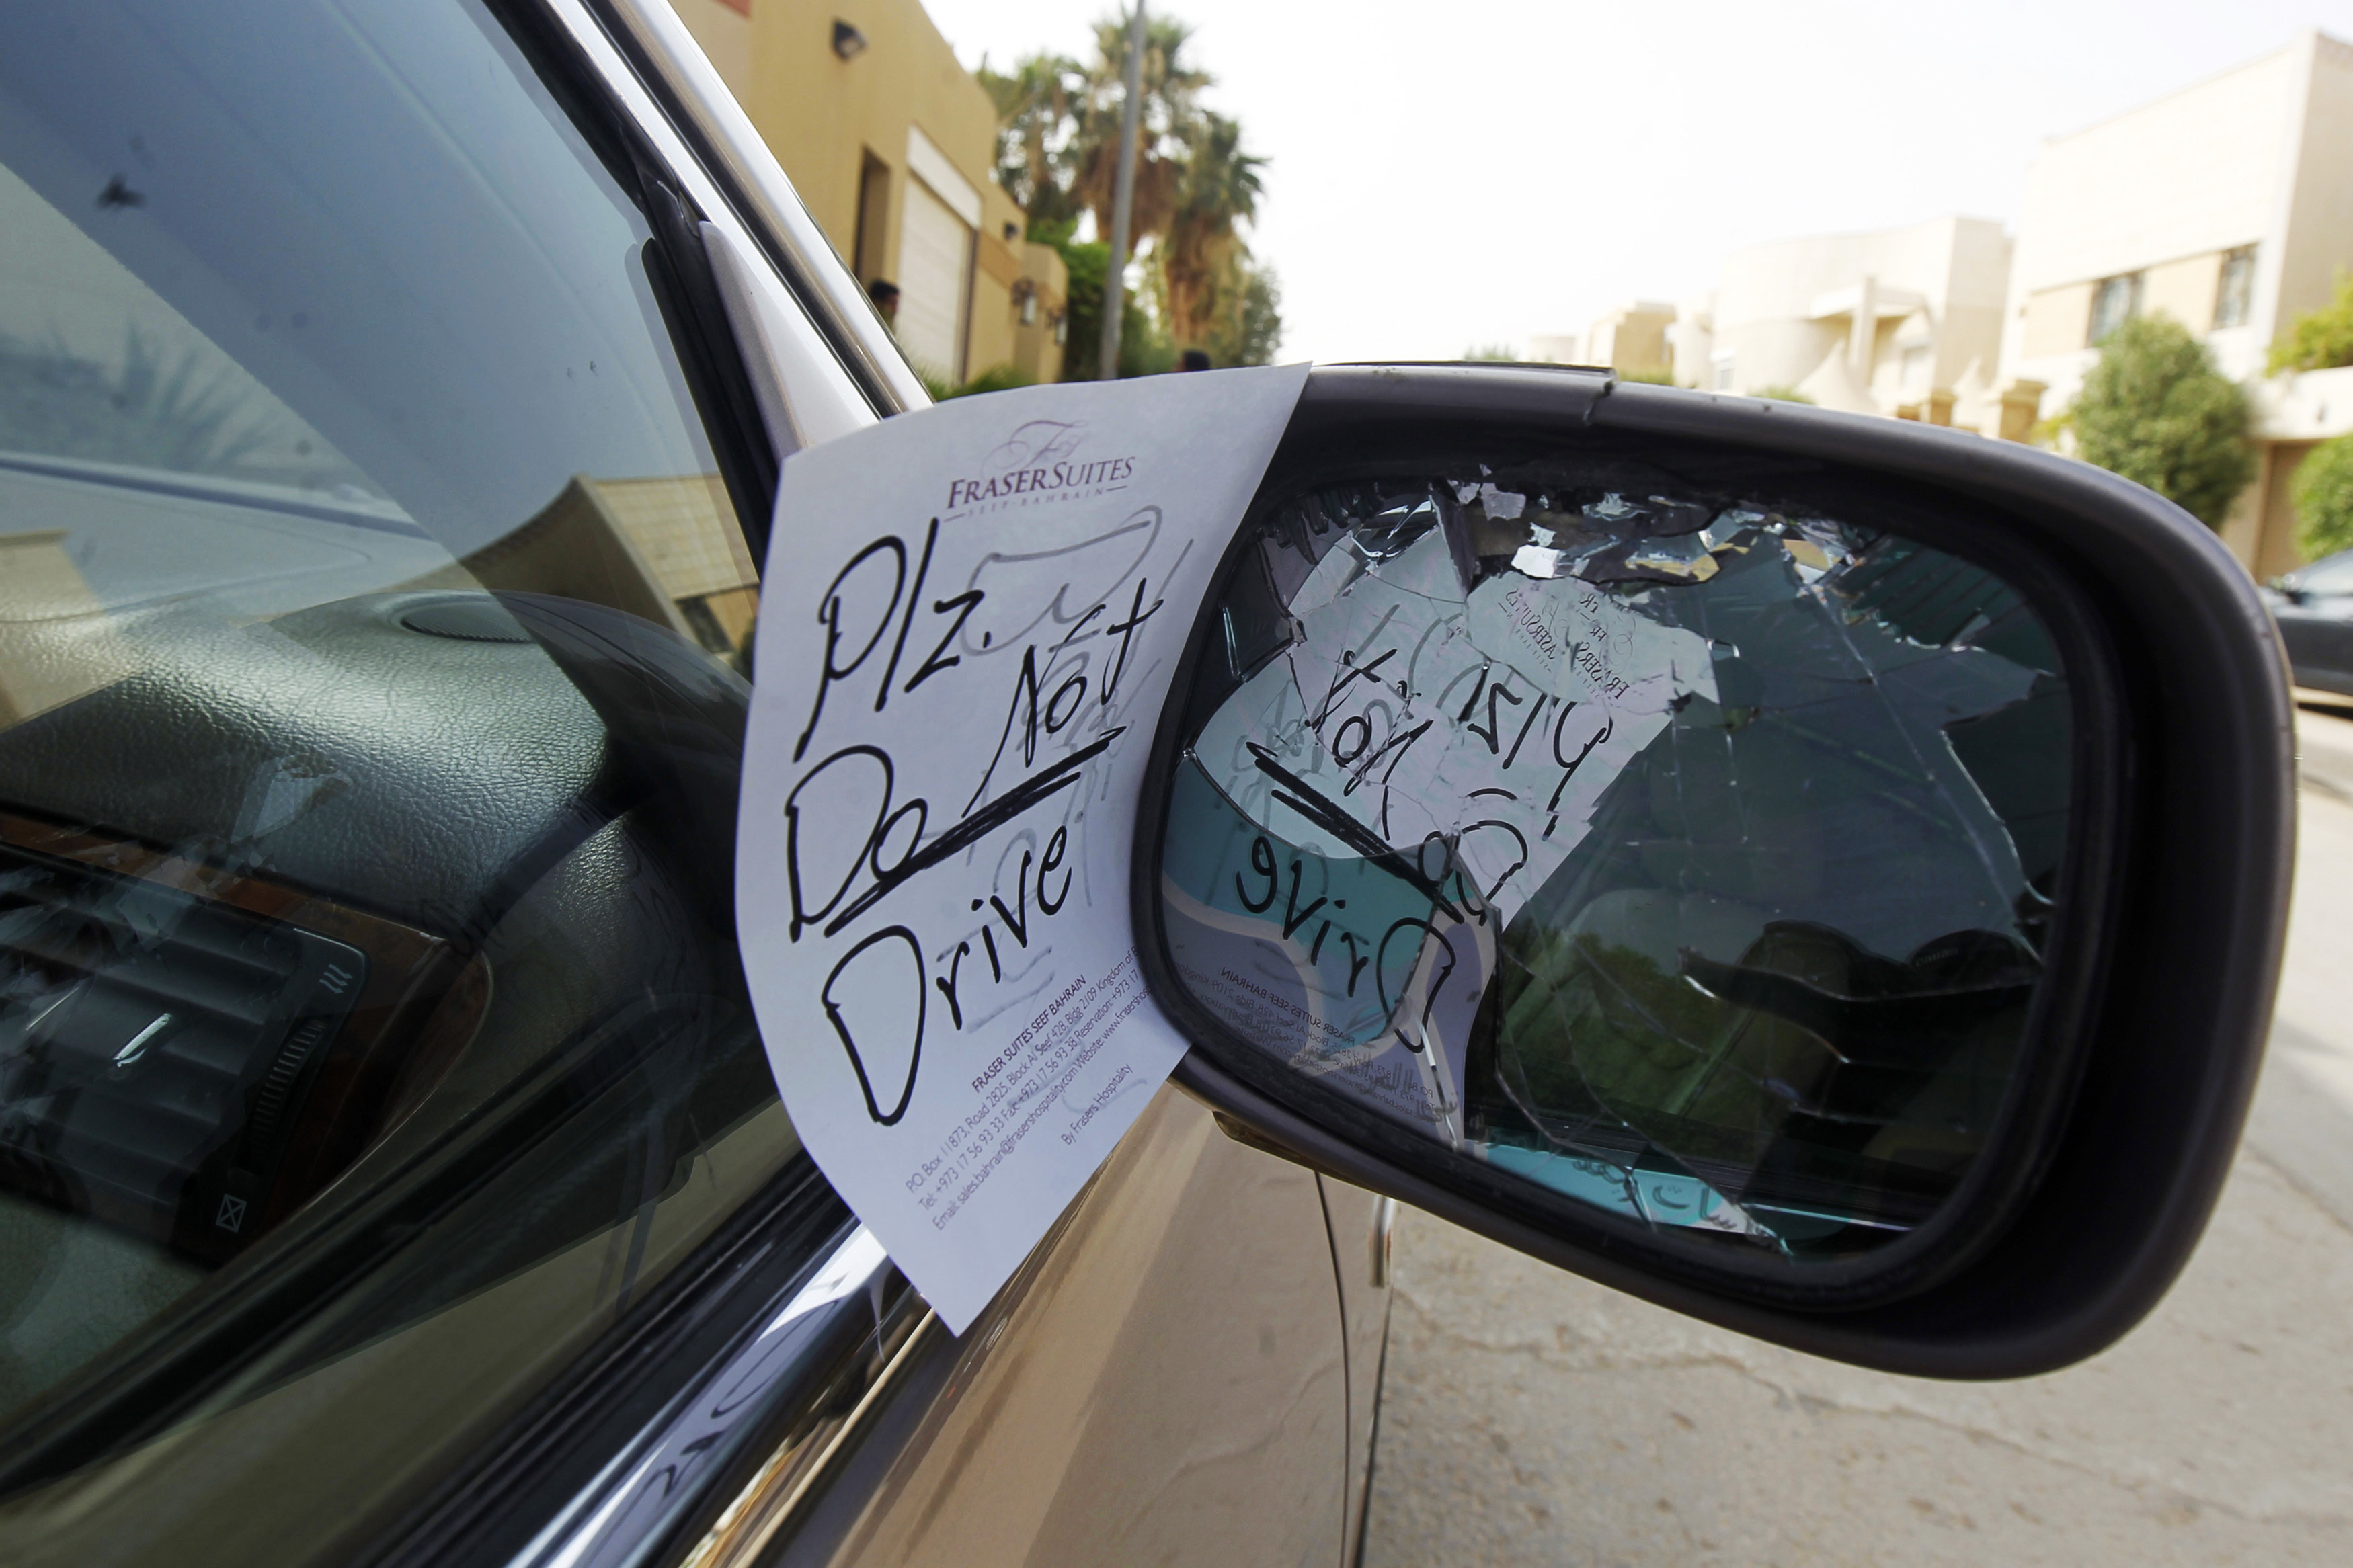 A note placed by an unknown person on female driver Azza Al Shmasani's car, is pictured in Saudi Arabia June 22, 2011. Saudi Arabia has no formal ban on women driving. But as citizens must use only Saudi-issued licences in the country, and as these are issued only to men, women drivers are anathema. An outcry at the segregation, which contributes to the general cloistering of Saudi women, has been fuelled by social media interest in two would-be female motorists arrested in May.  REUTERS/Fahad Shadeed   (SAUDI ARABIA - Tags: TRANSPORT SOCIETY) - GM1E76N02DR01